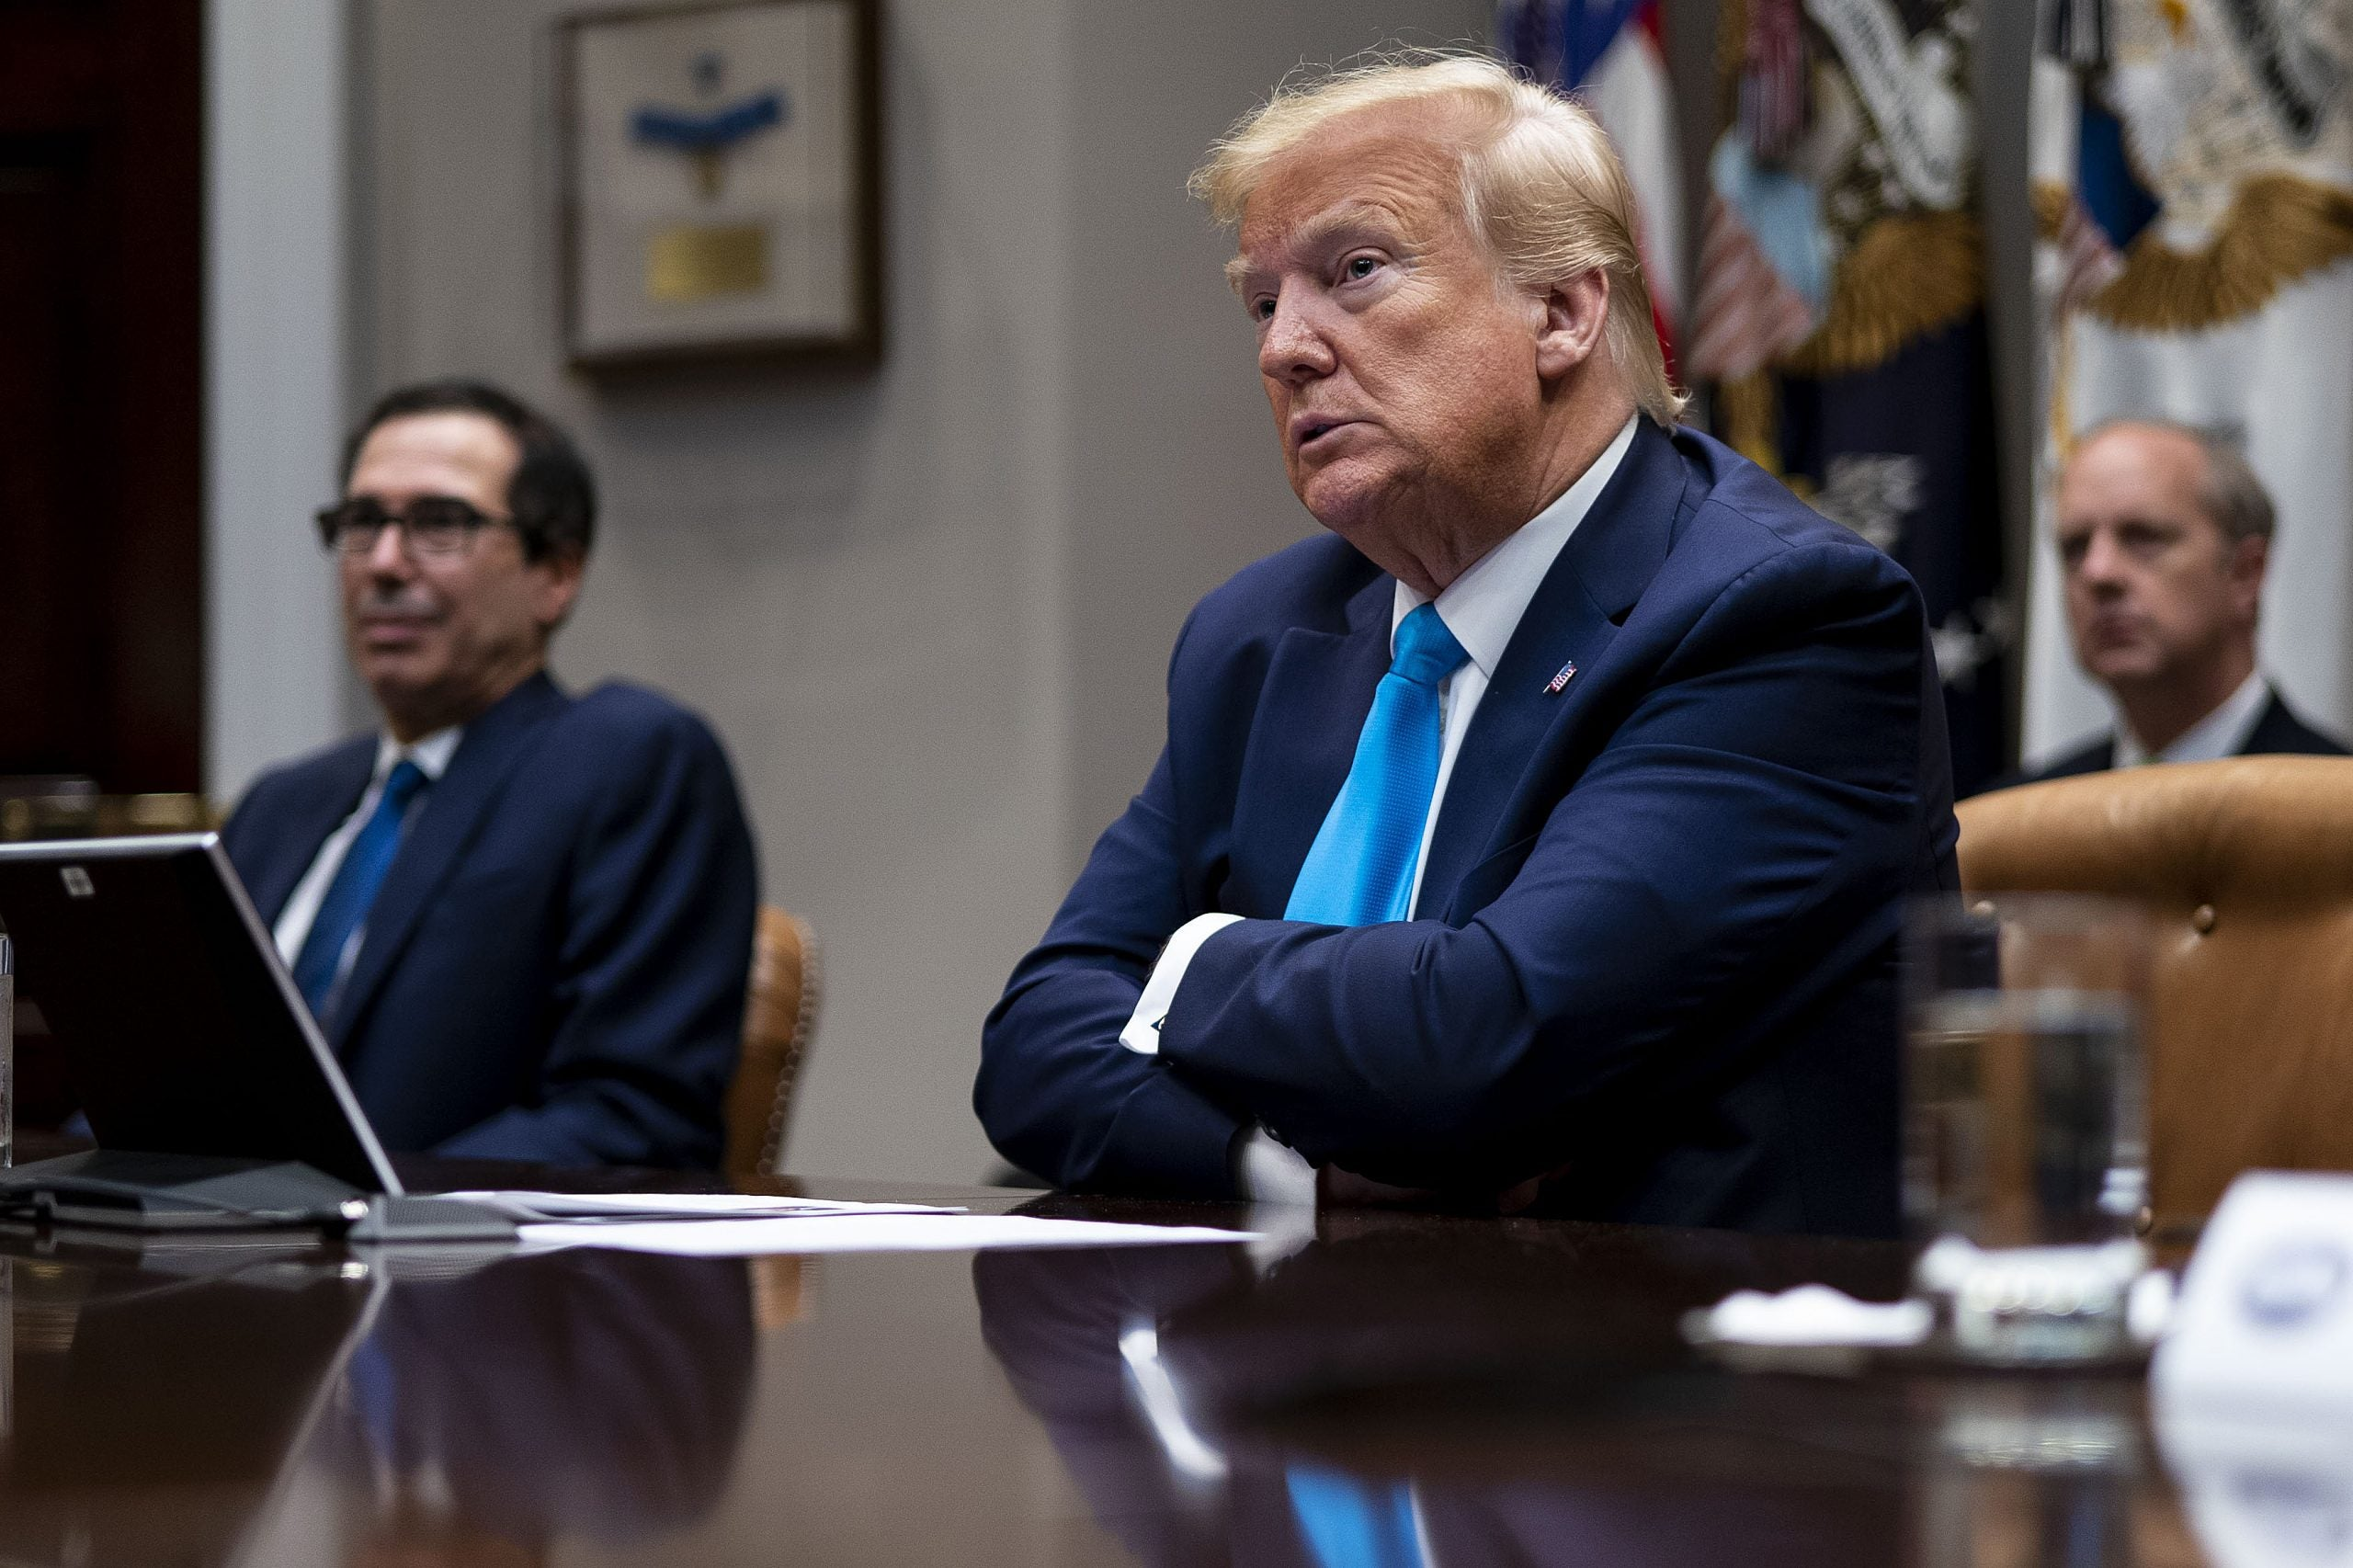 Trump sits with Steve Mnuchin during a video conference about the Paycheck Protection Program